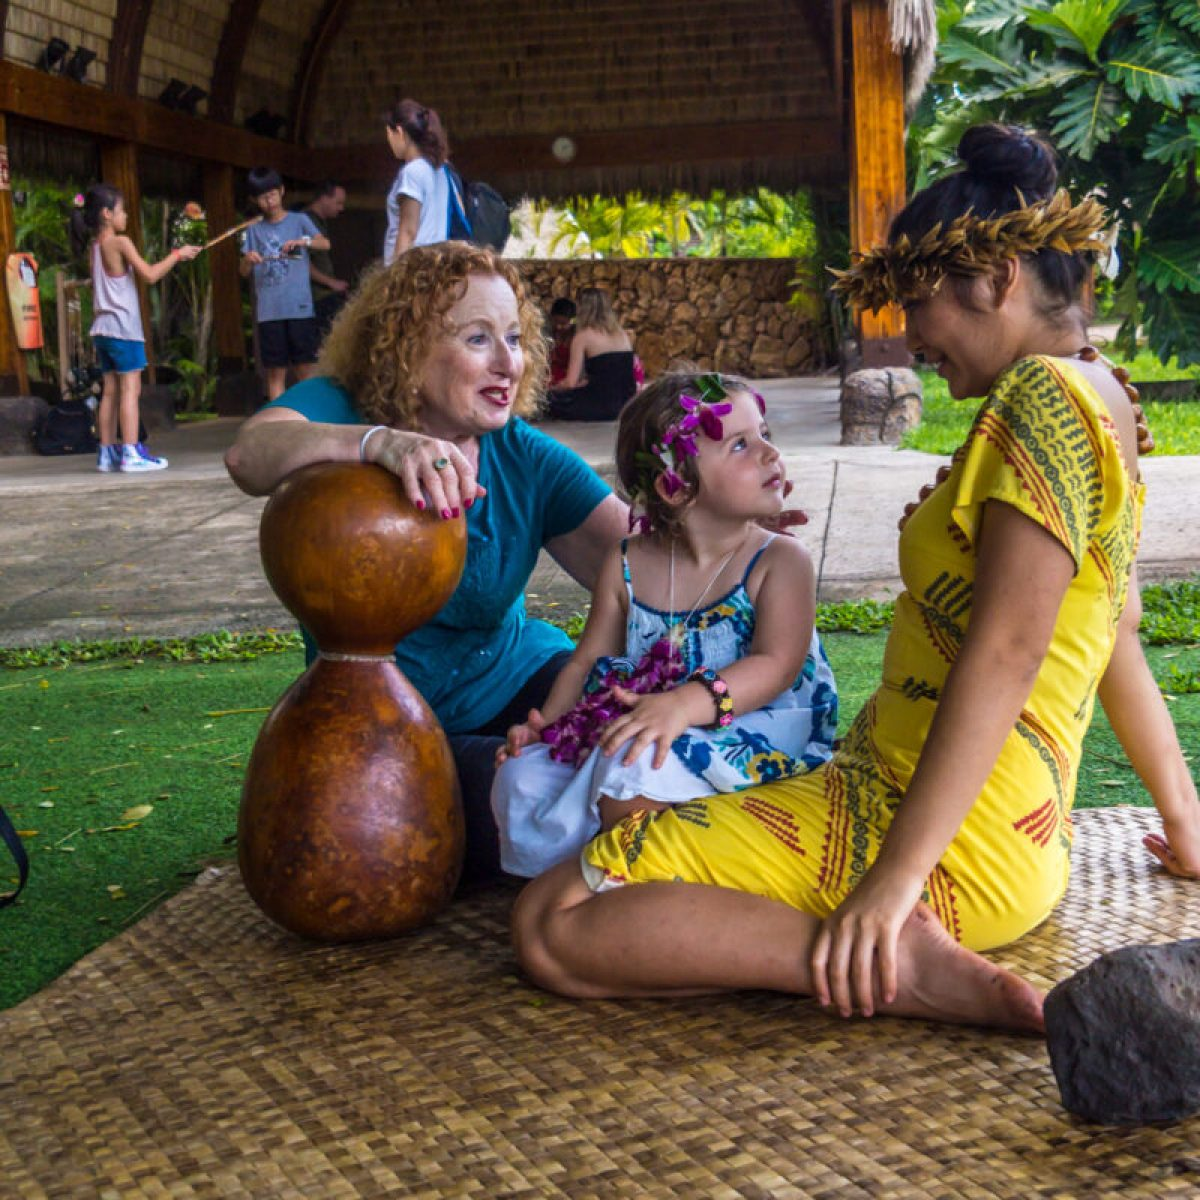 Sharing the aloha spirit at Polynesian Cultural Center on Oahu